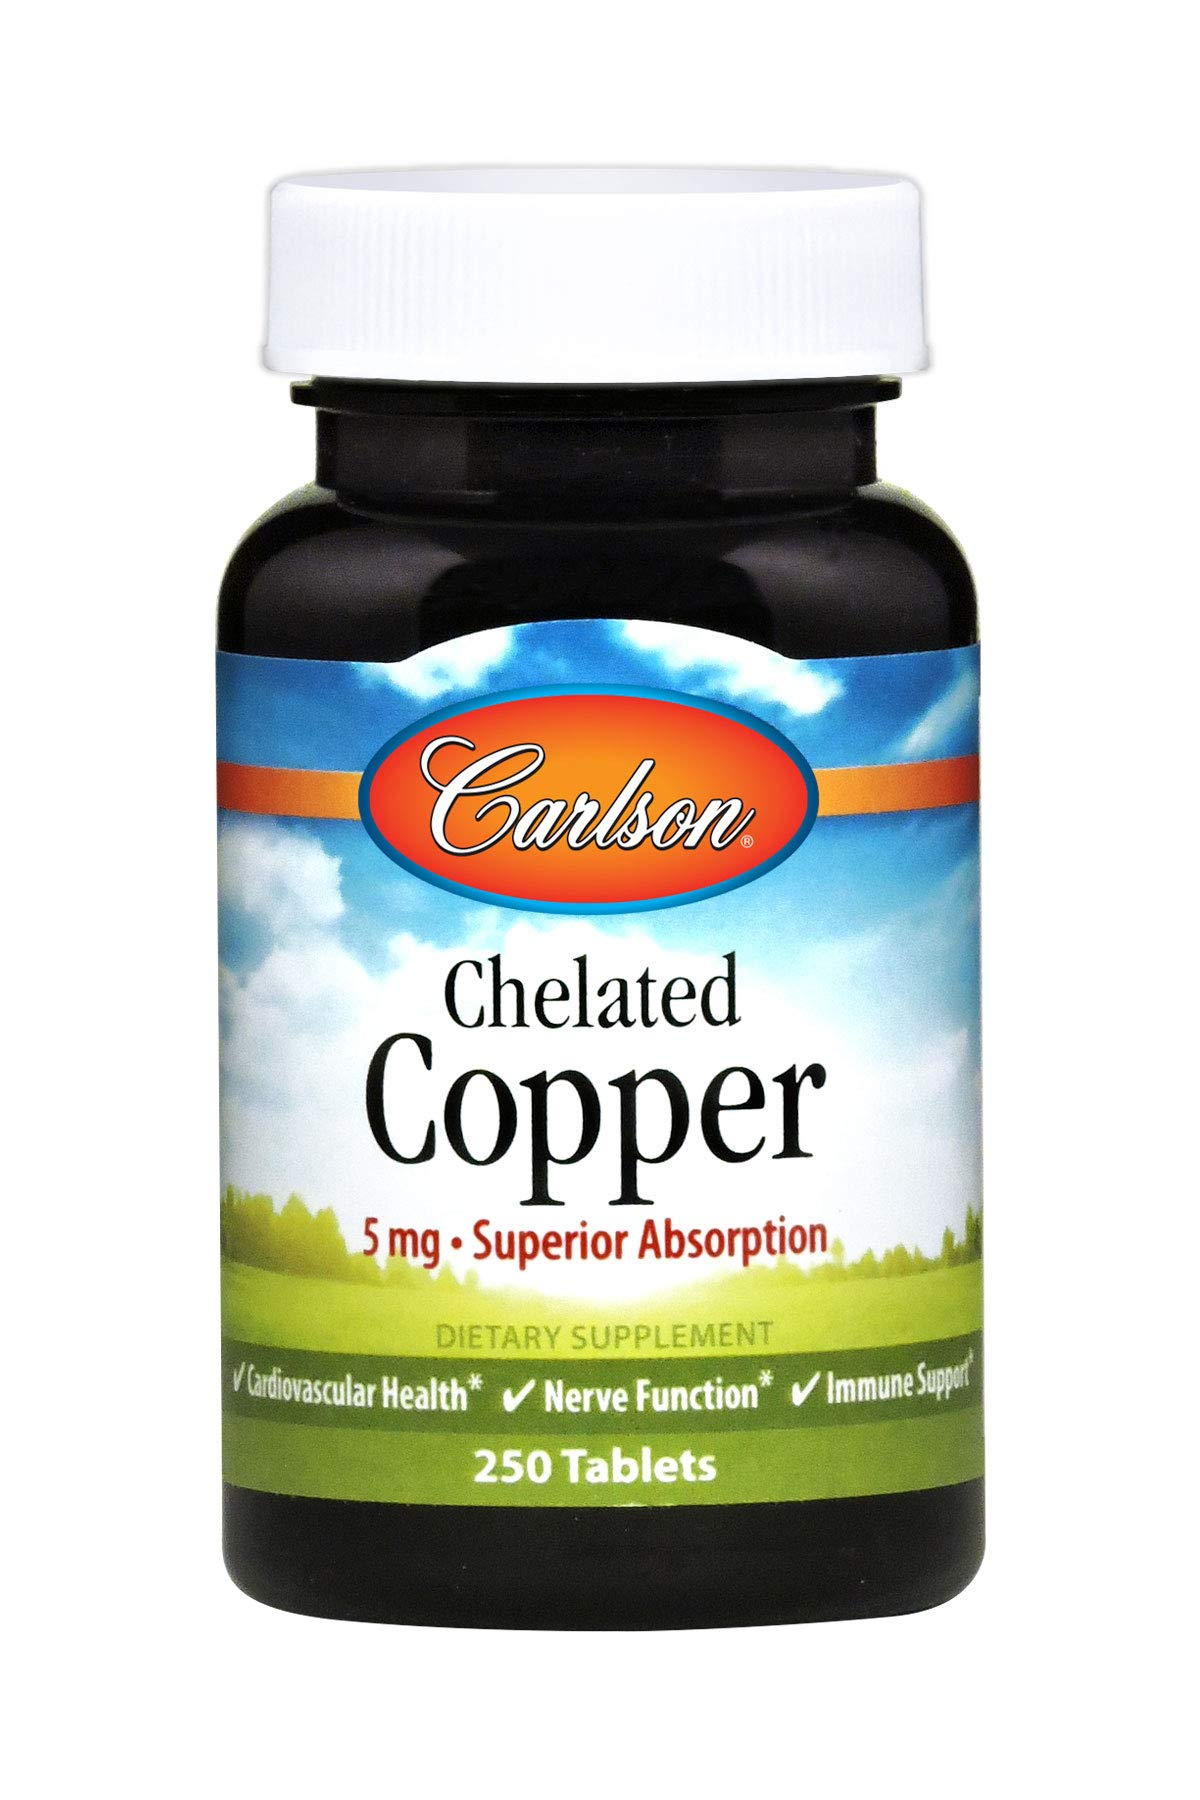 Carlson Chelated Copper 5 mg, 250 Tablets